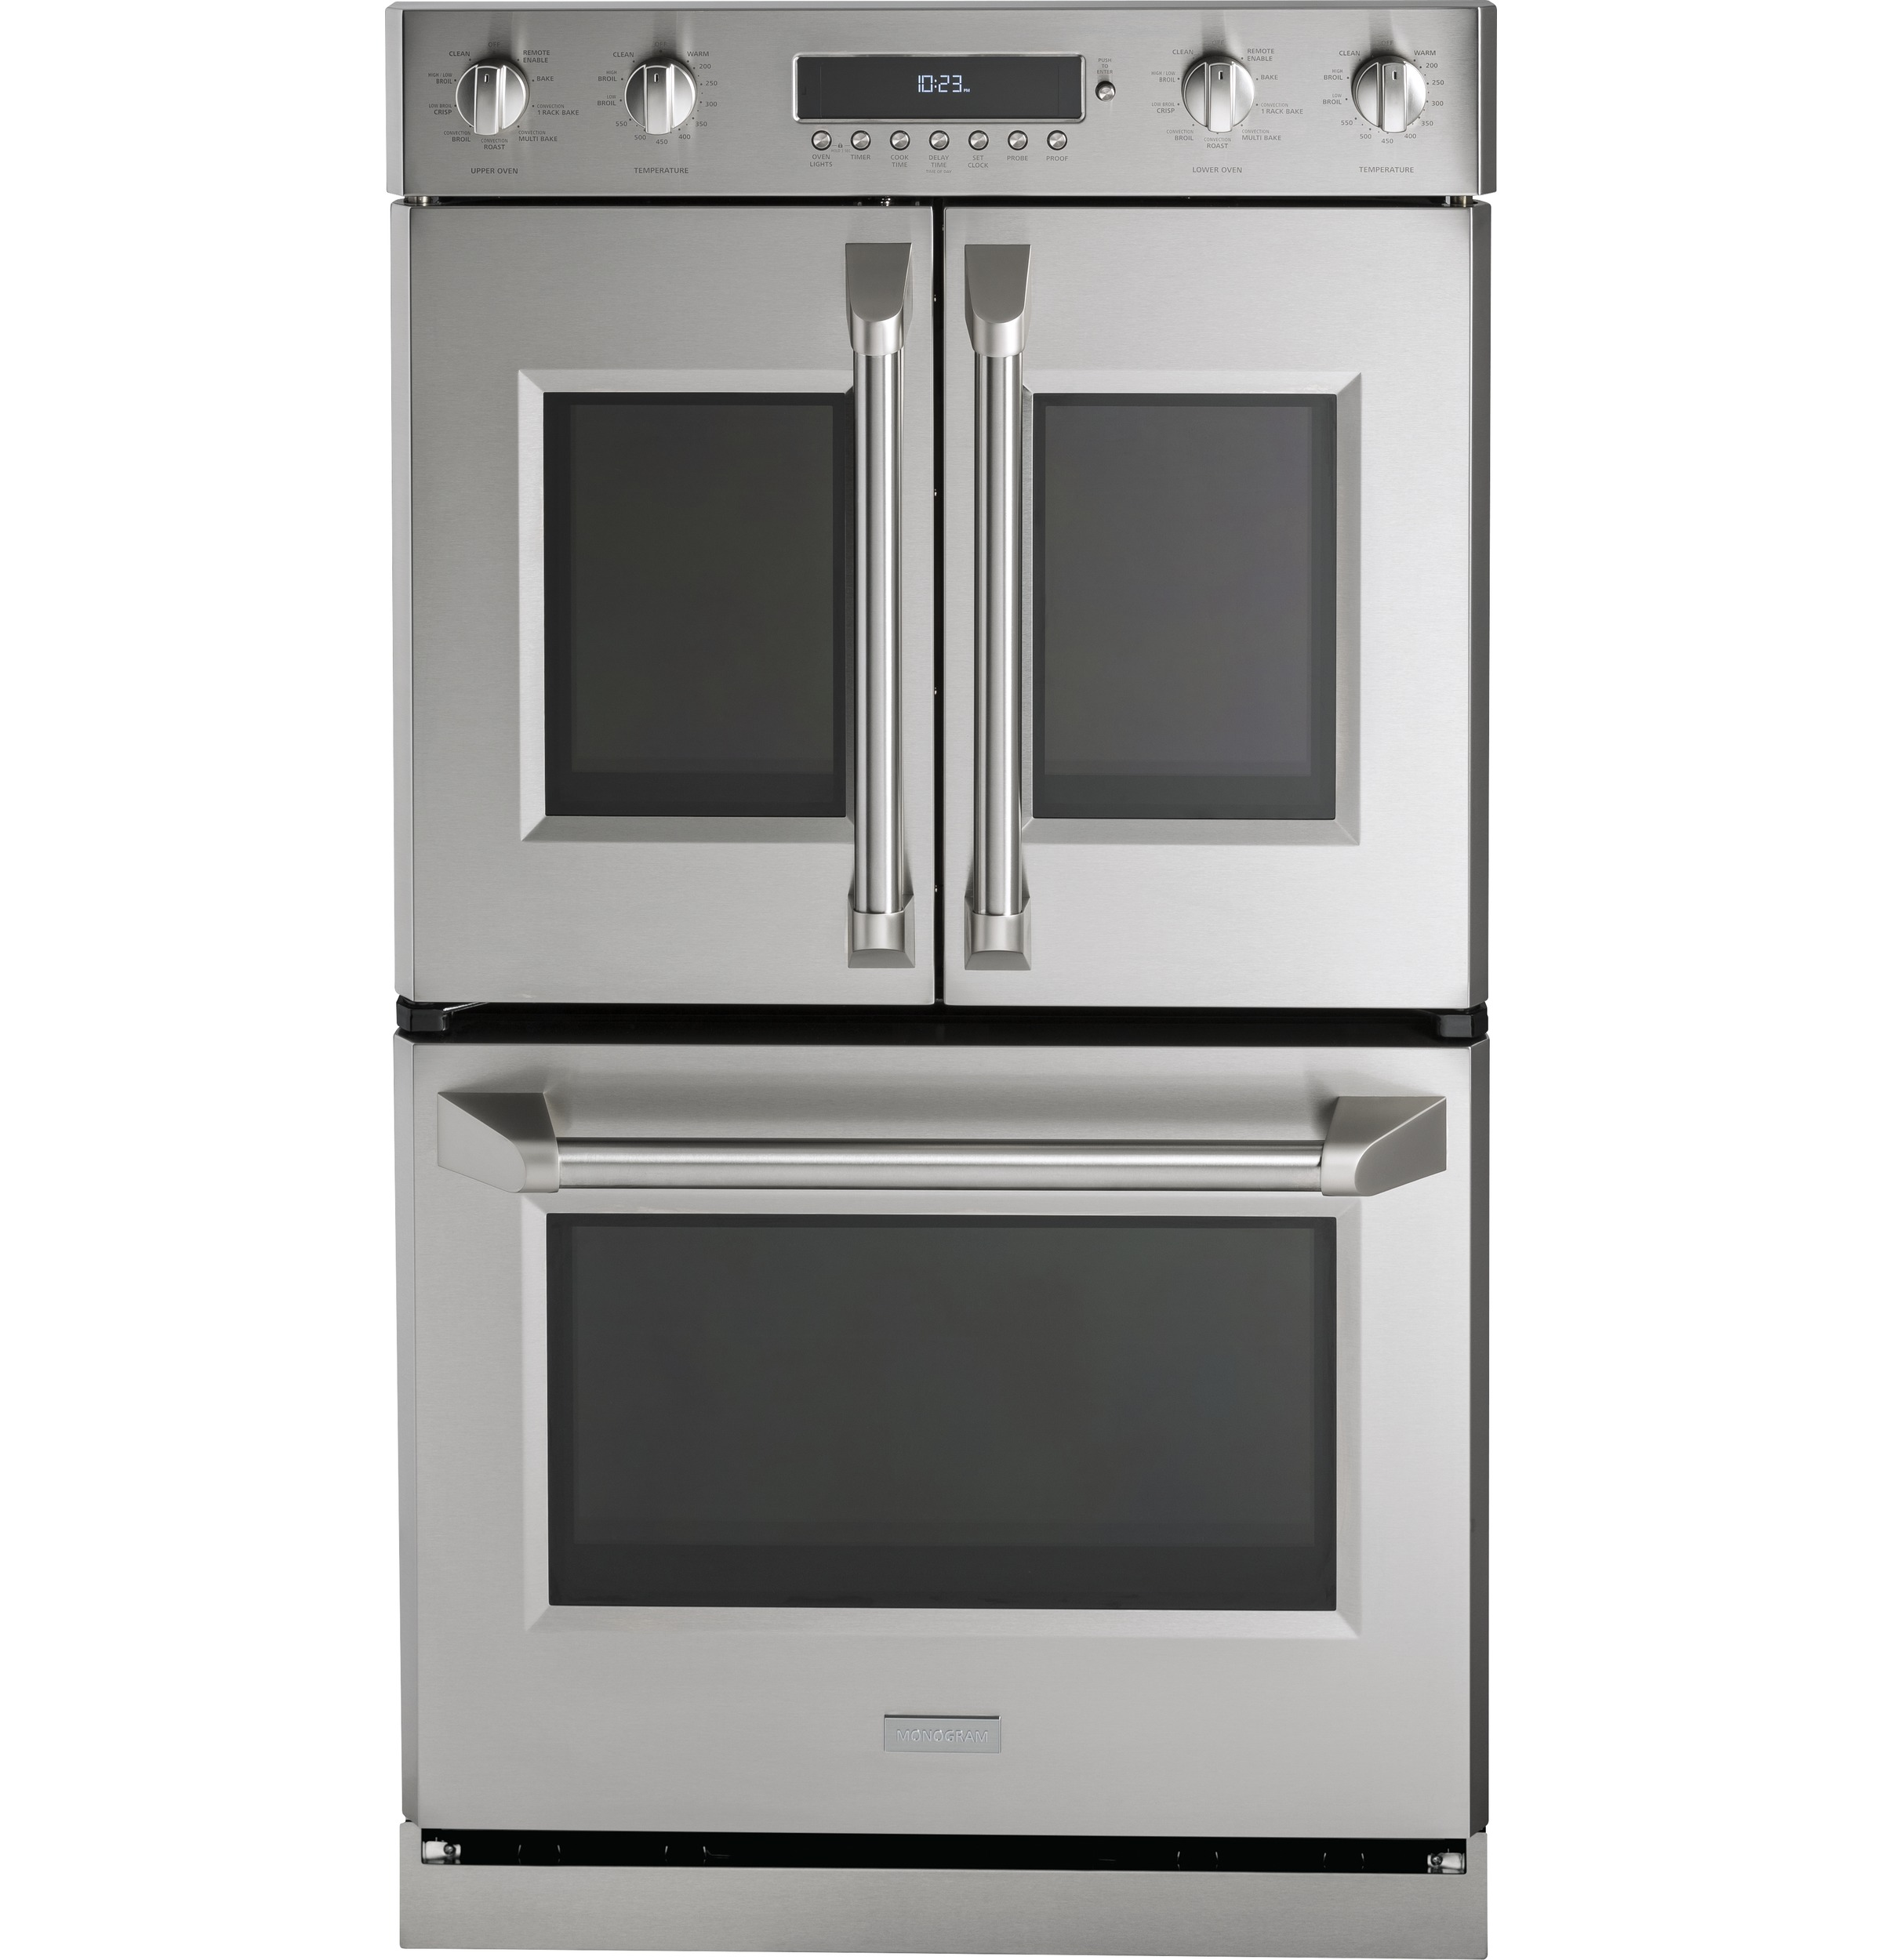 "Monogram Monogram 30"" Professional French-Door Electronic Convection Double Wall Oven"